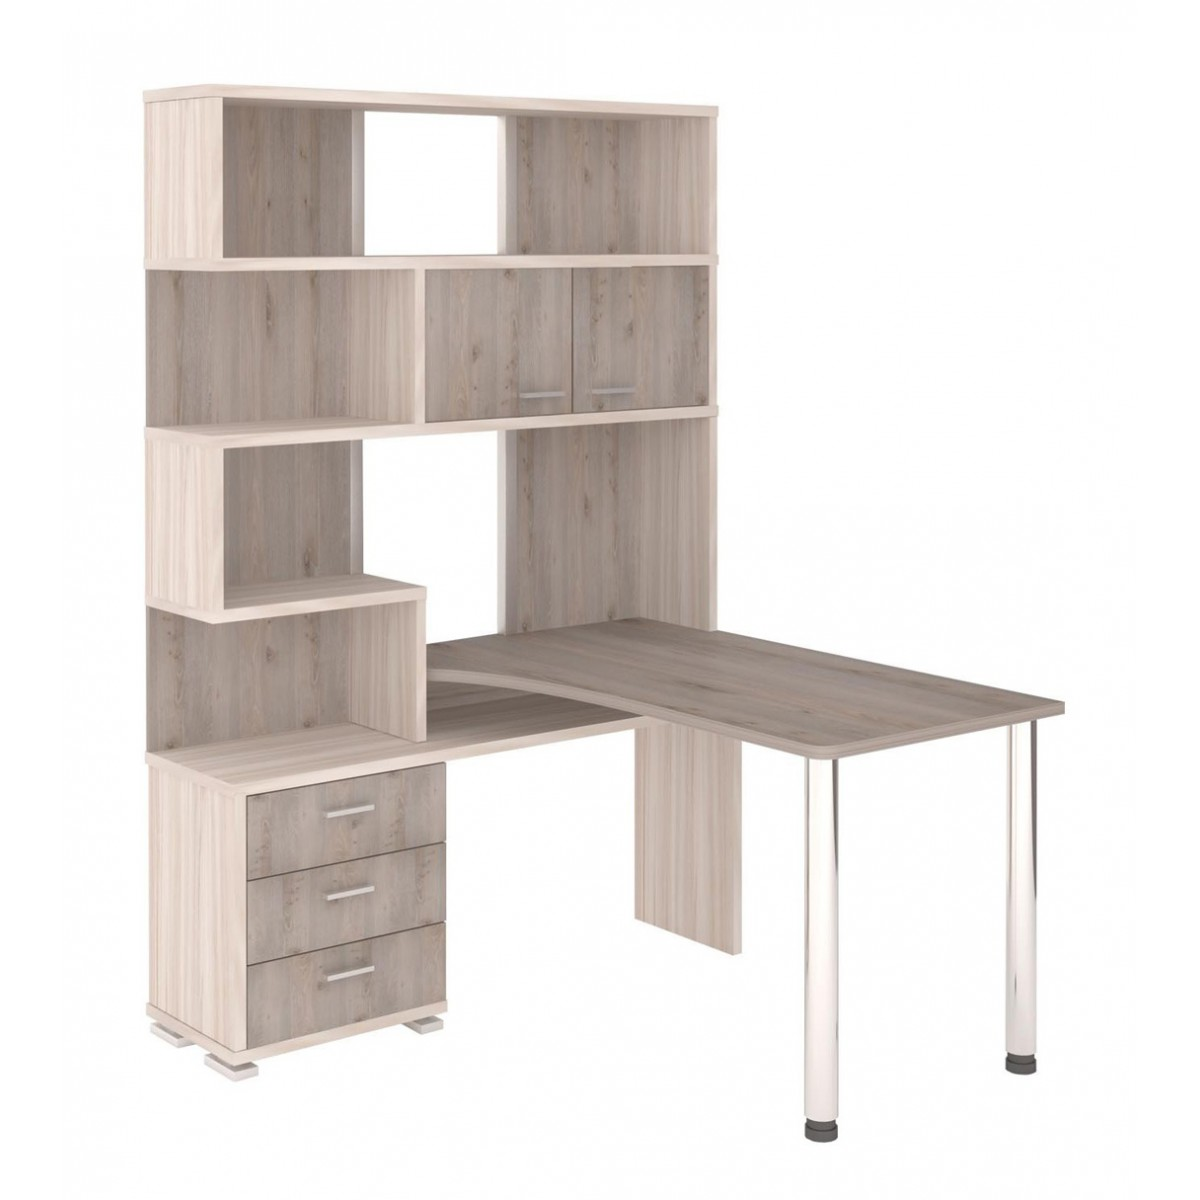 Picture of: Computer Table With Cabinet 72 Photos A Transformer With Shelves Angular For A Computer A Model With A Wardrobe